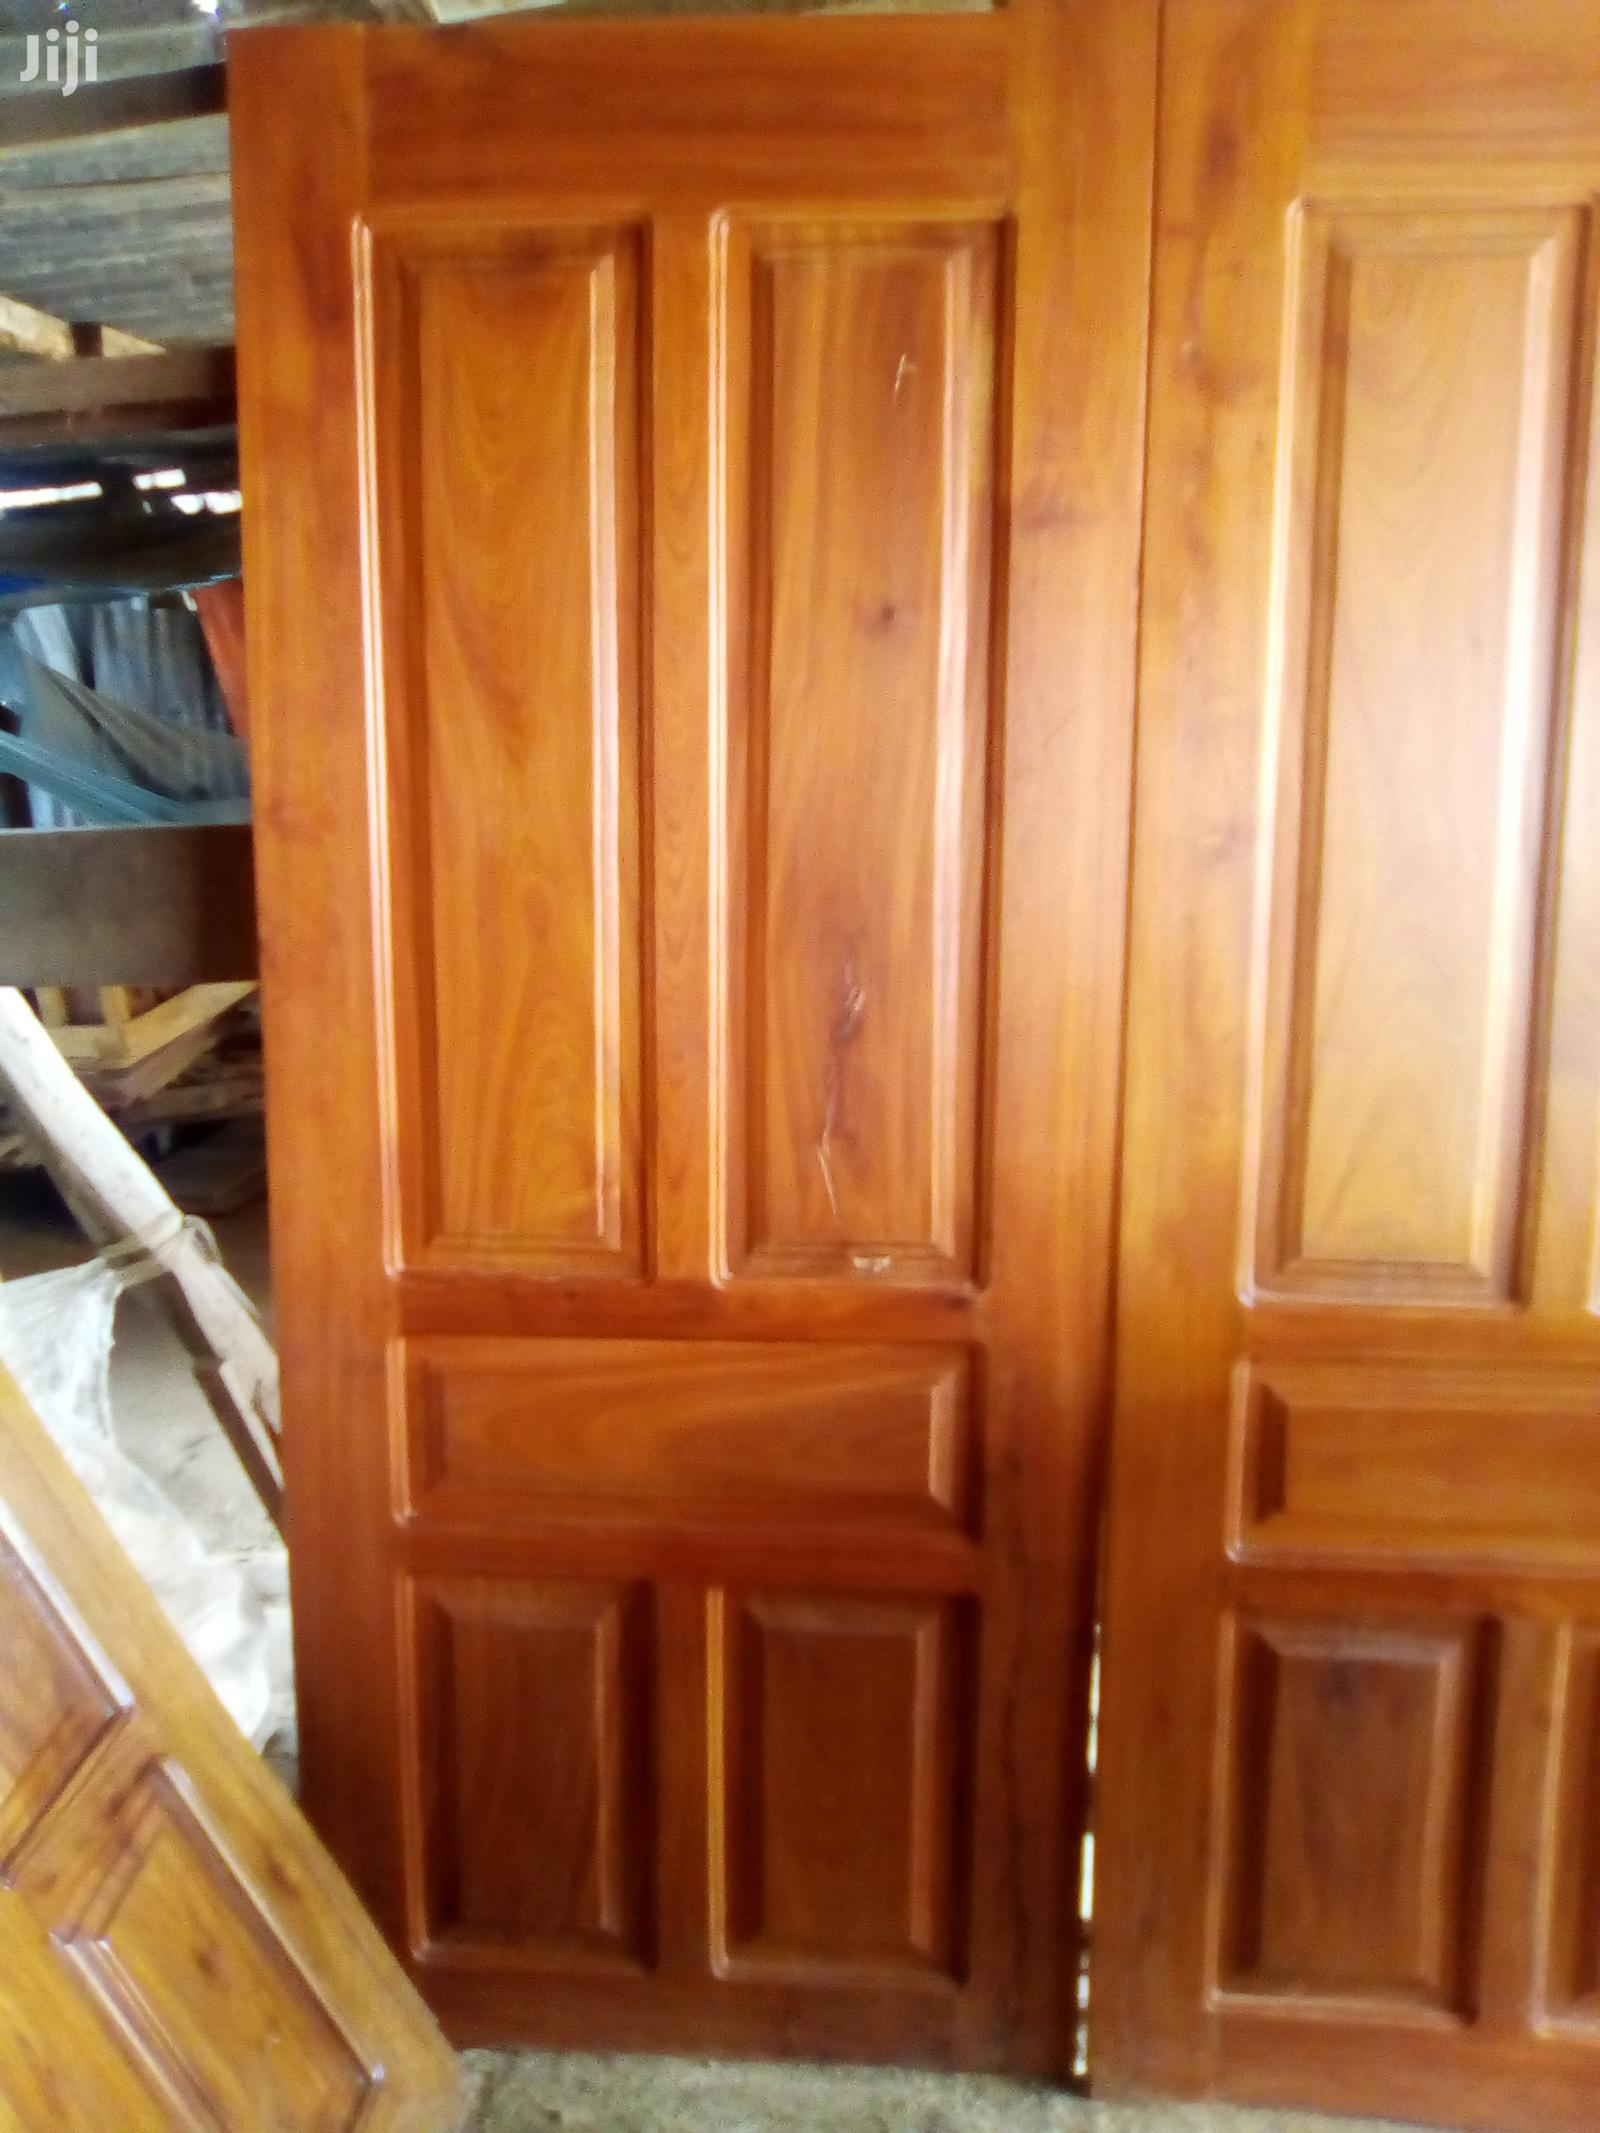 House Doors and Frames Made a Natural Timber